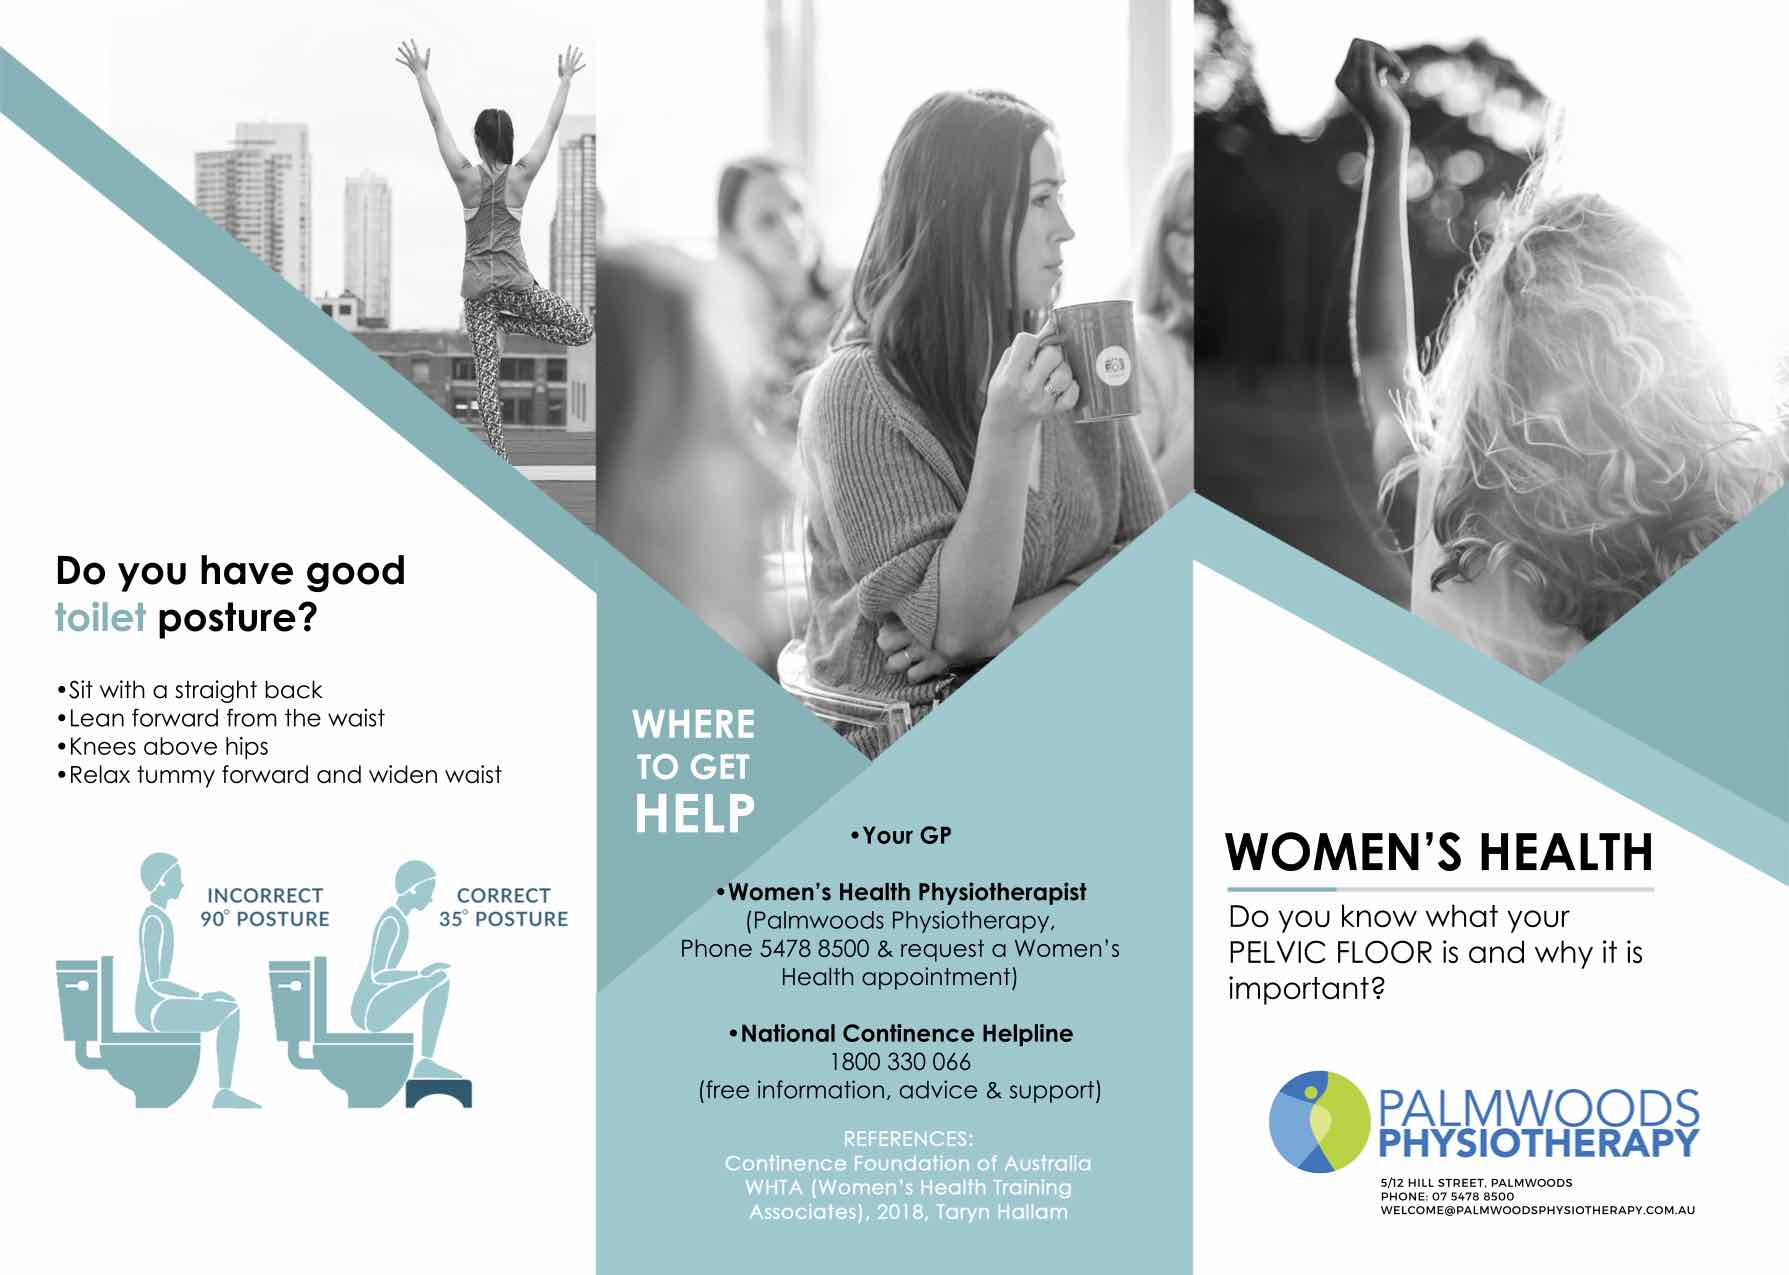 Palmwoods Physiotherapy Womens health brochure Page 1.jpg